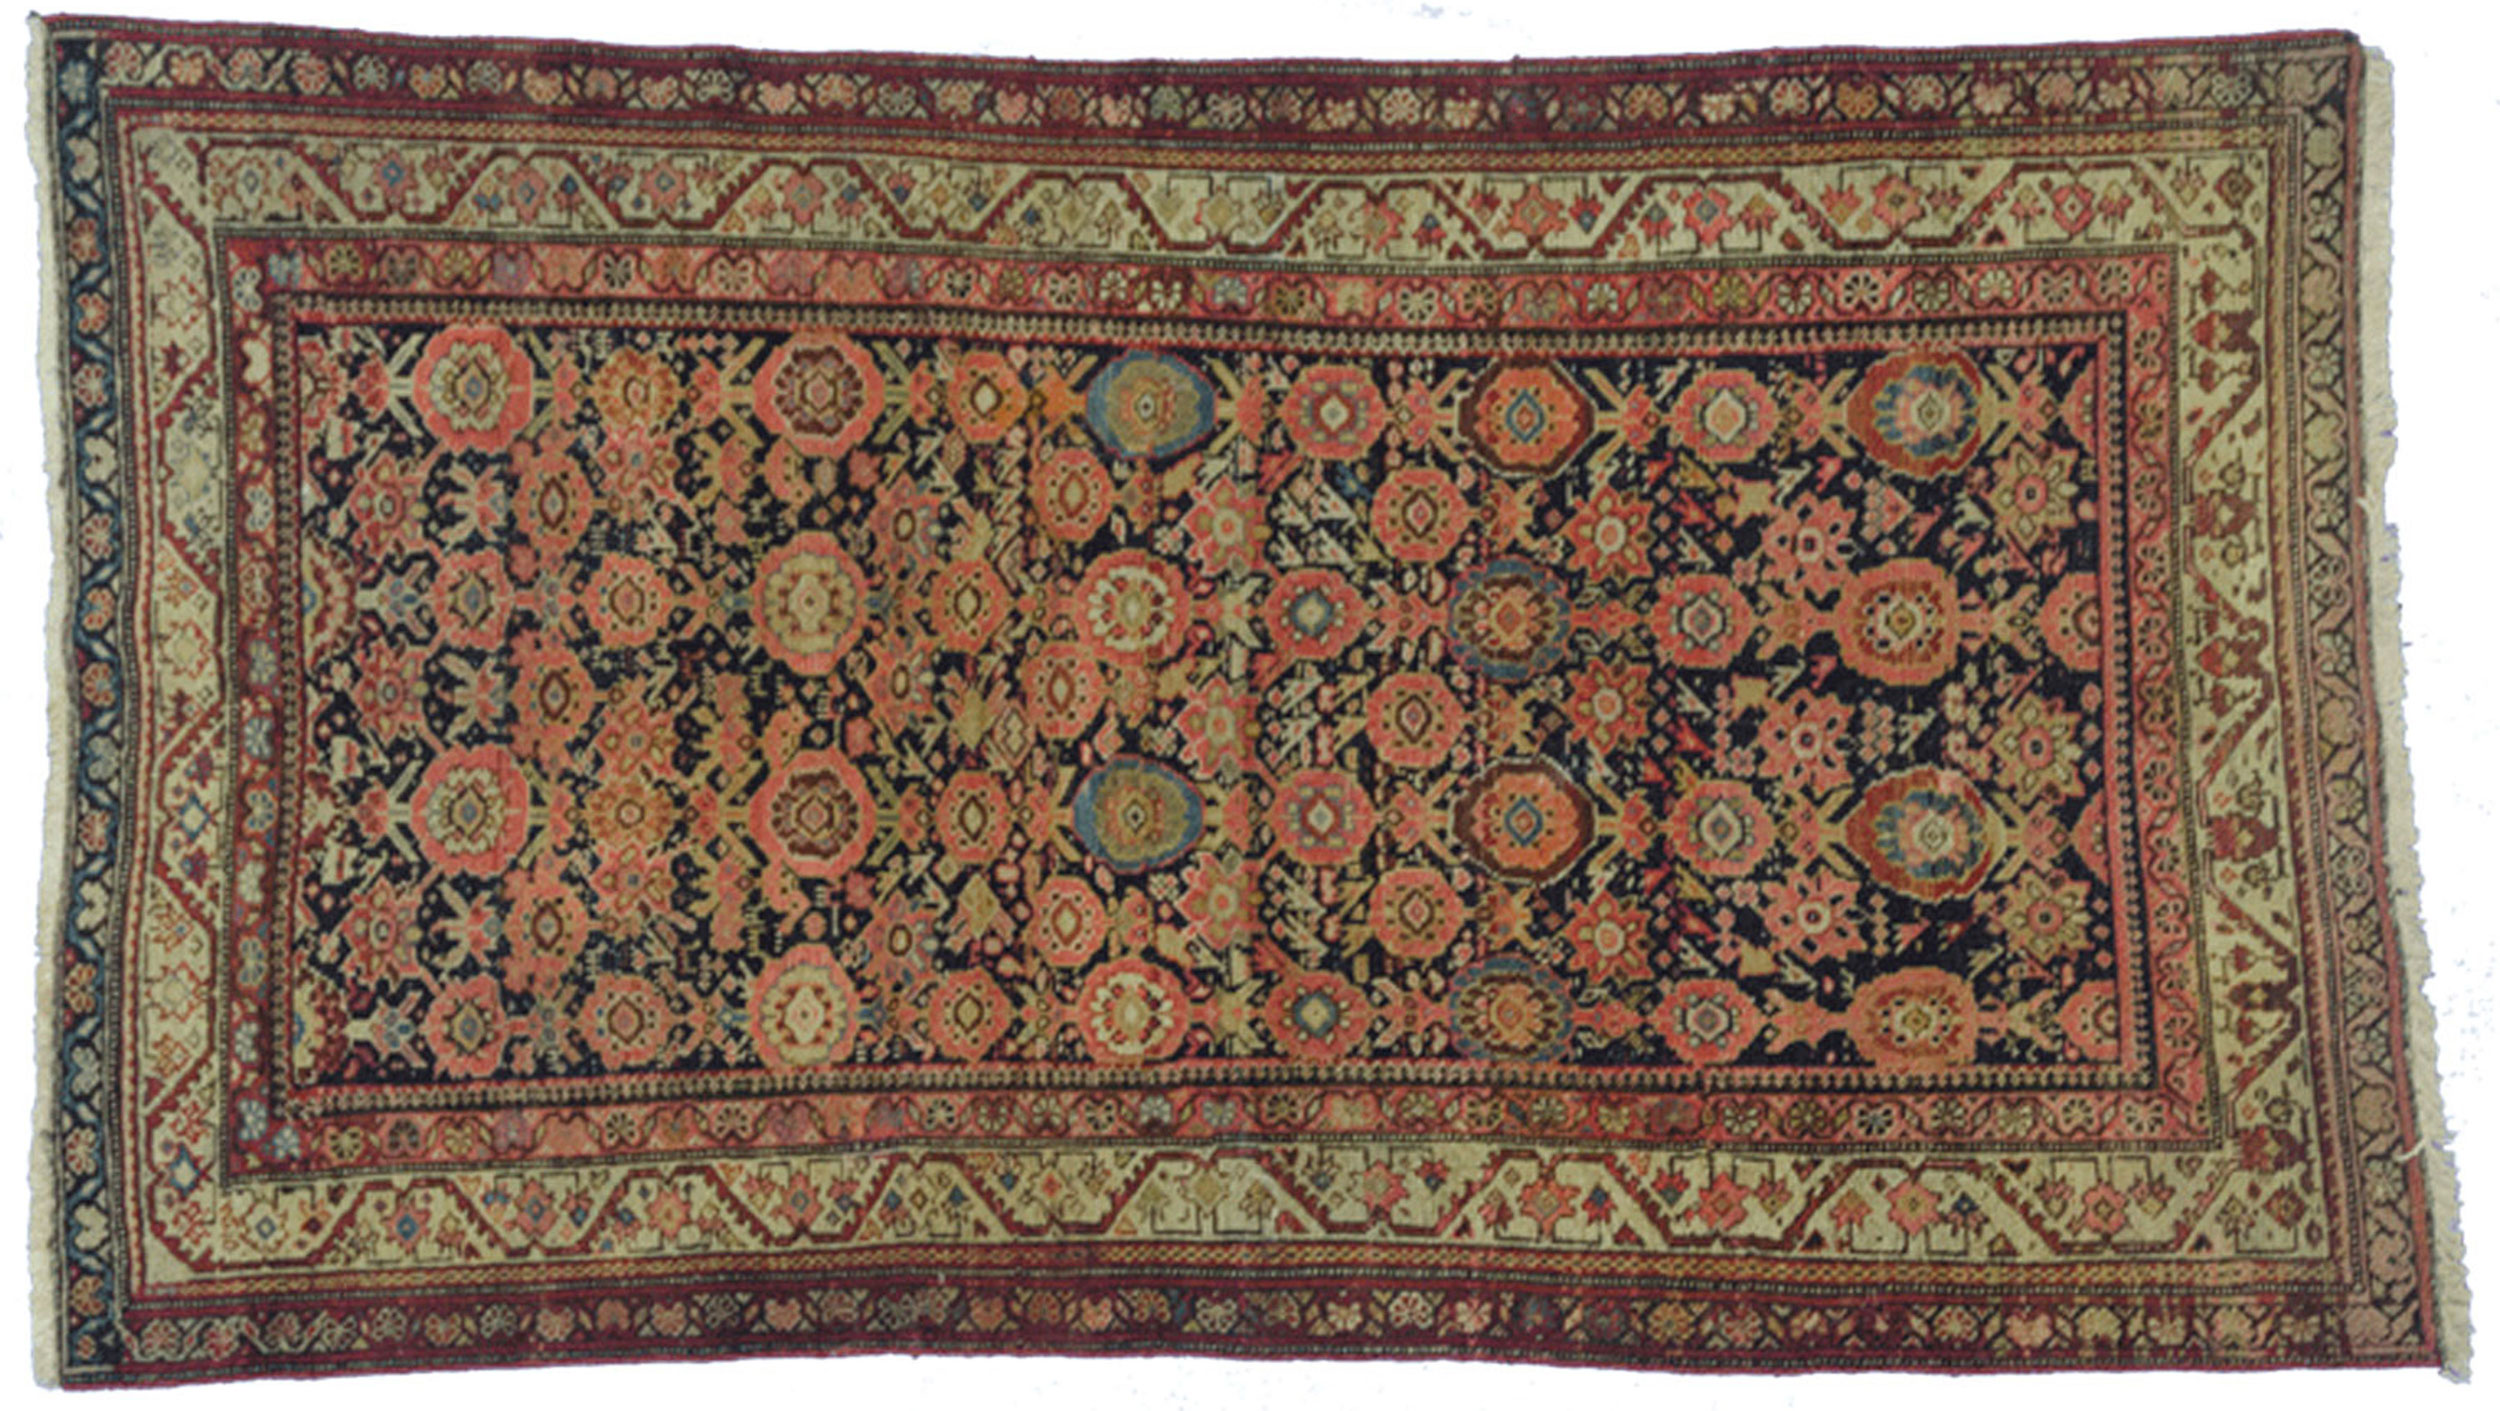 Antique Malayer Rug 178x102cm